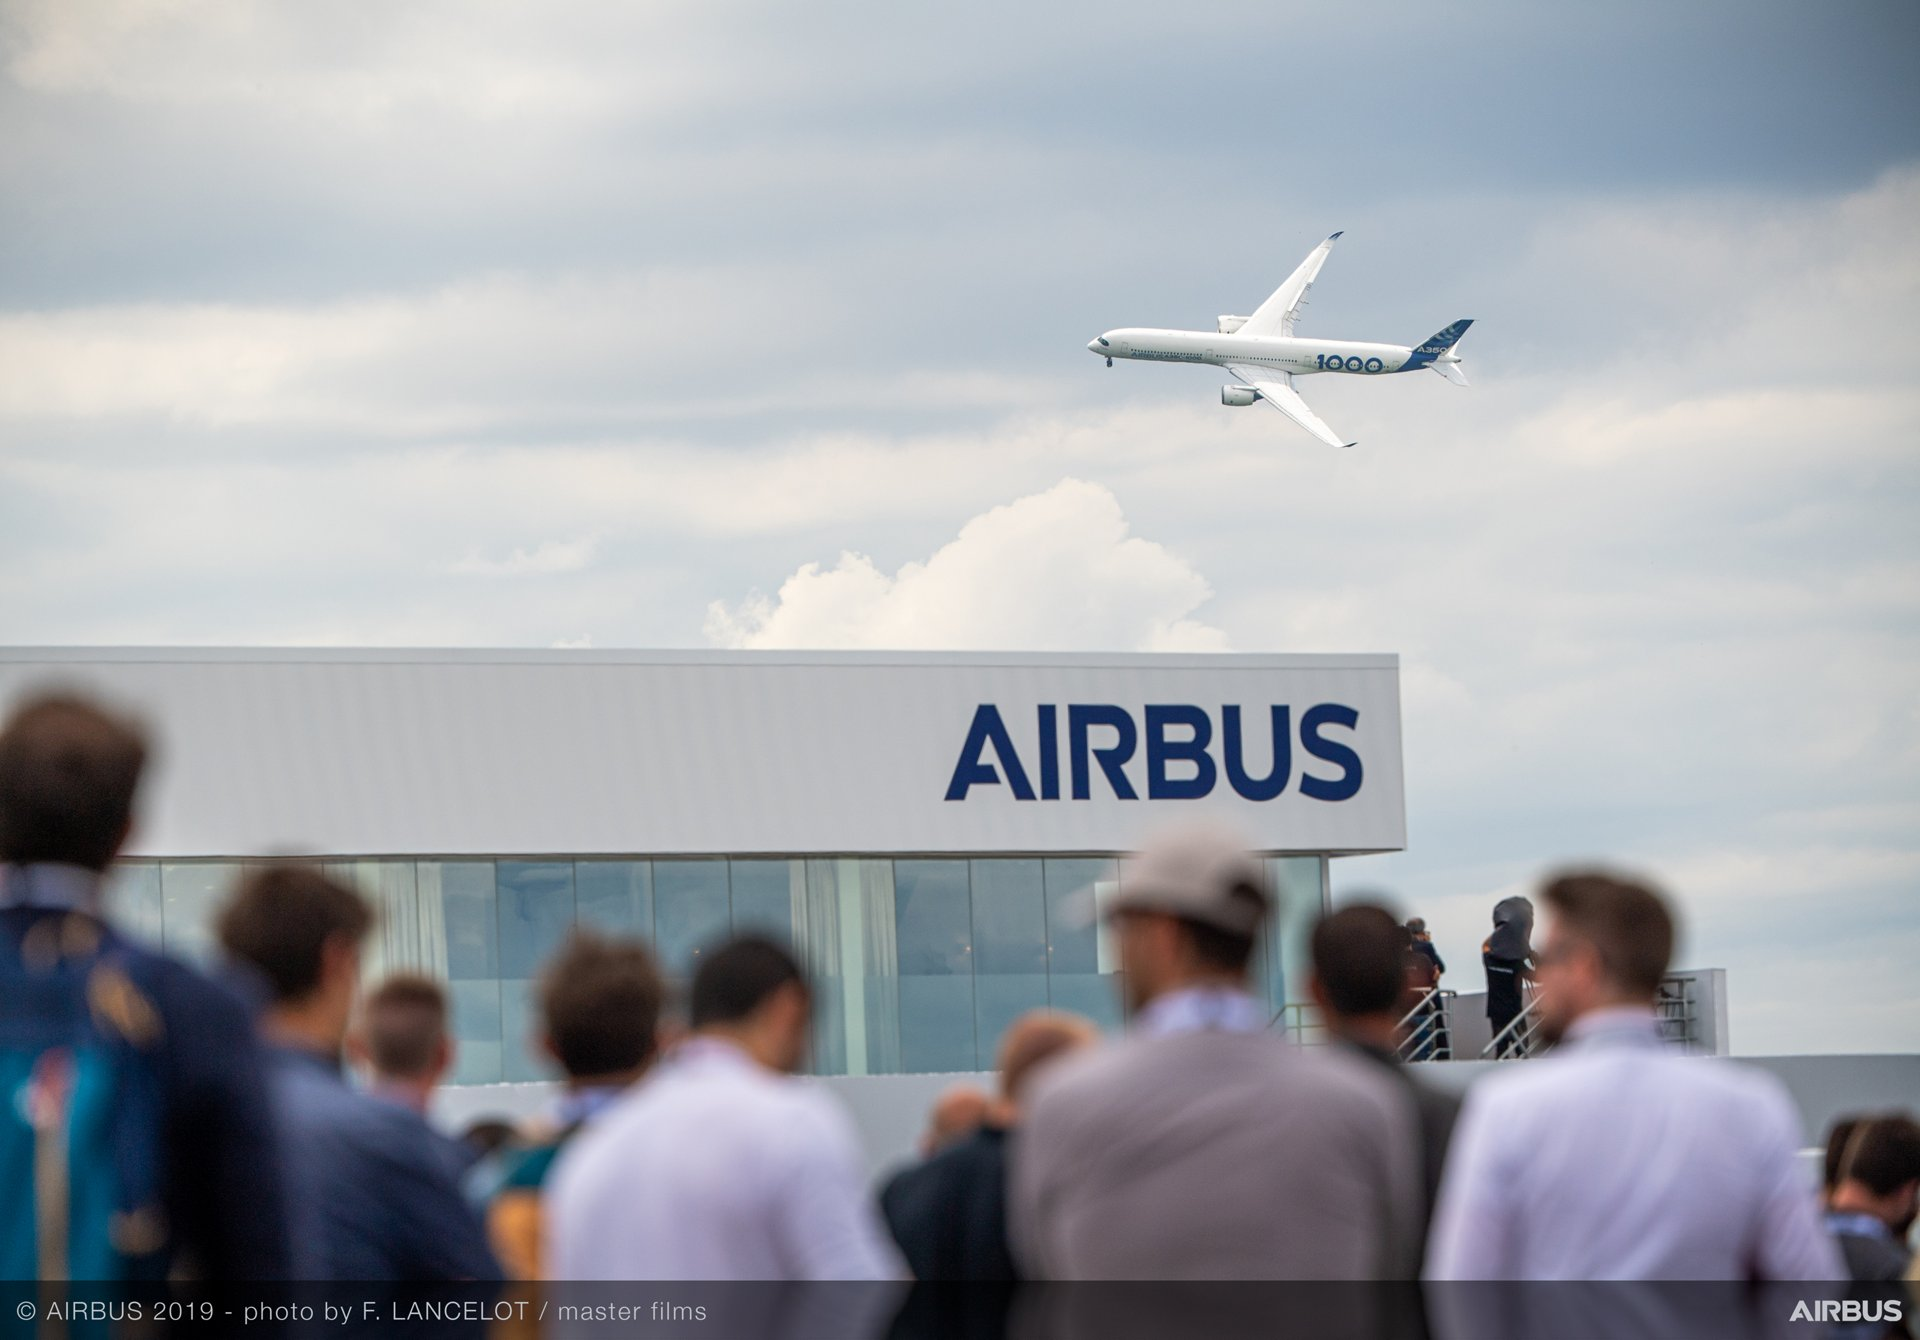 A350-1000 Flying Display at Paris airshow 2019 Day 4